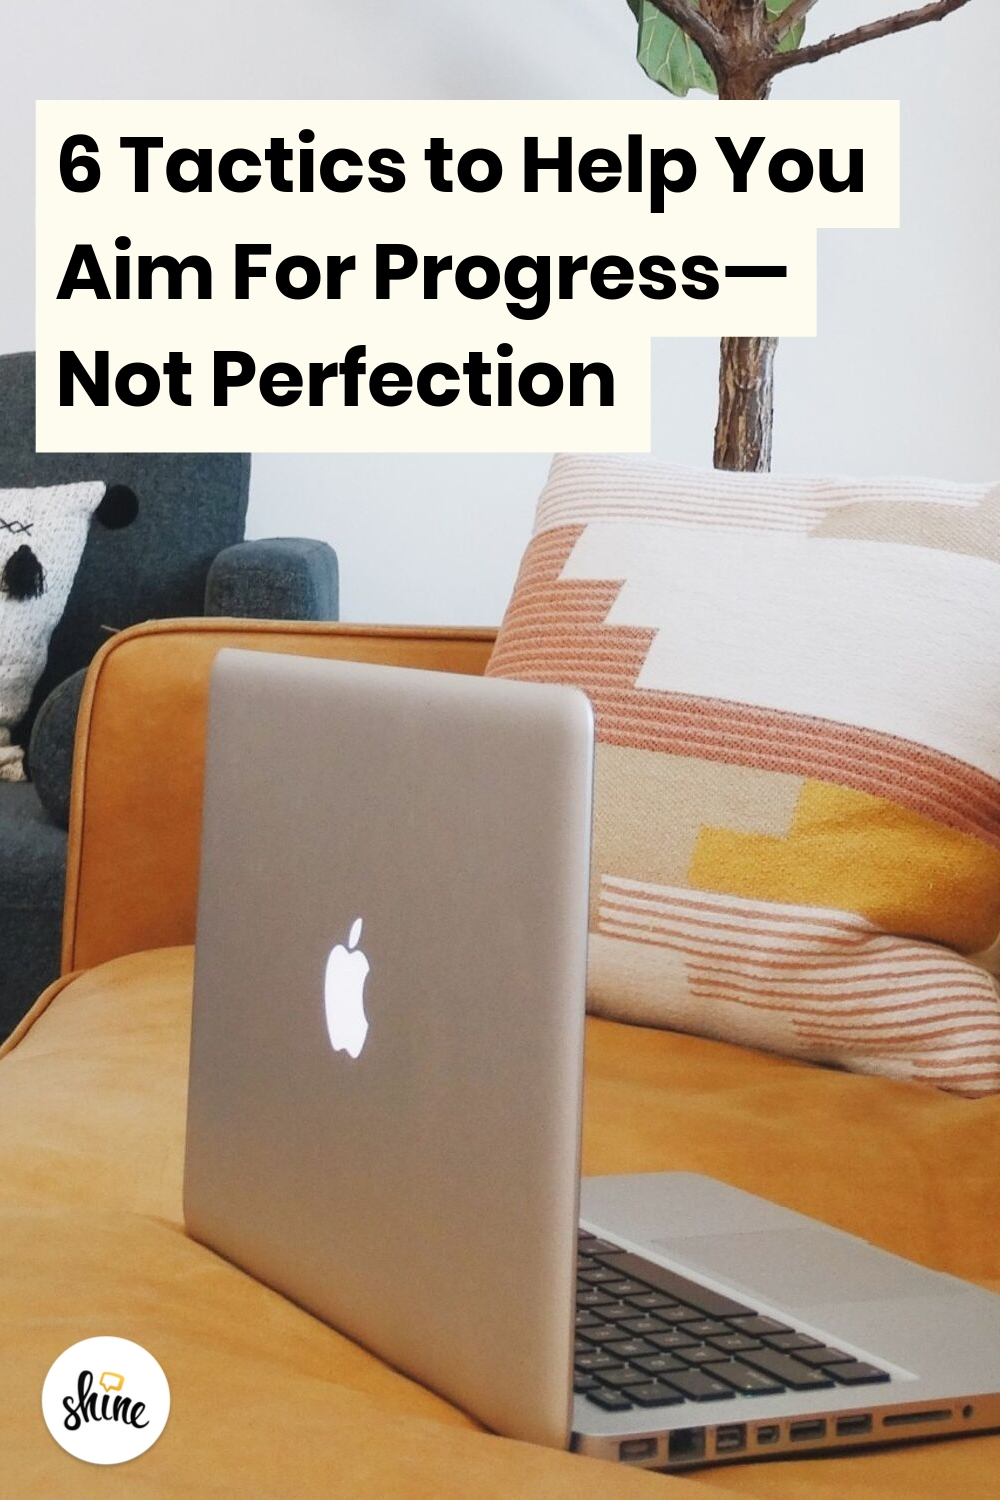 6 Tactics to Help You Aim for Progress Not Perfection